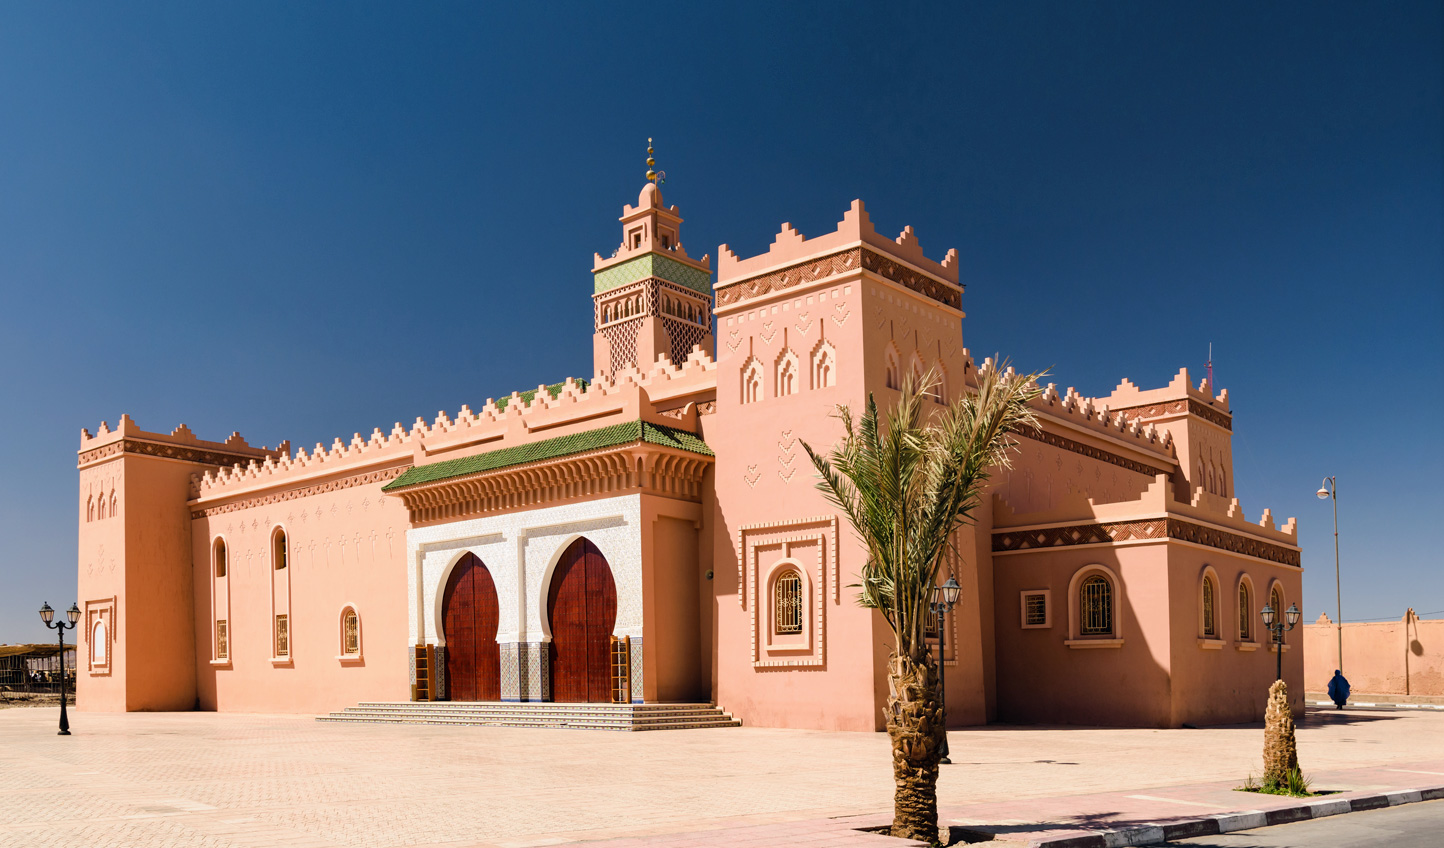 Get to know Moroccan culture on a city tour of Zagora